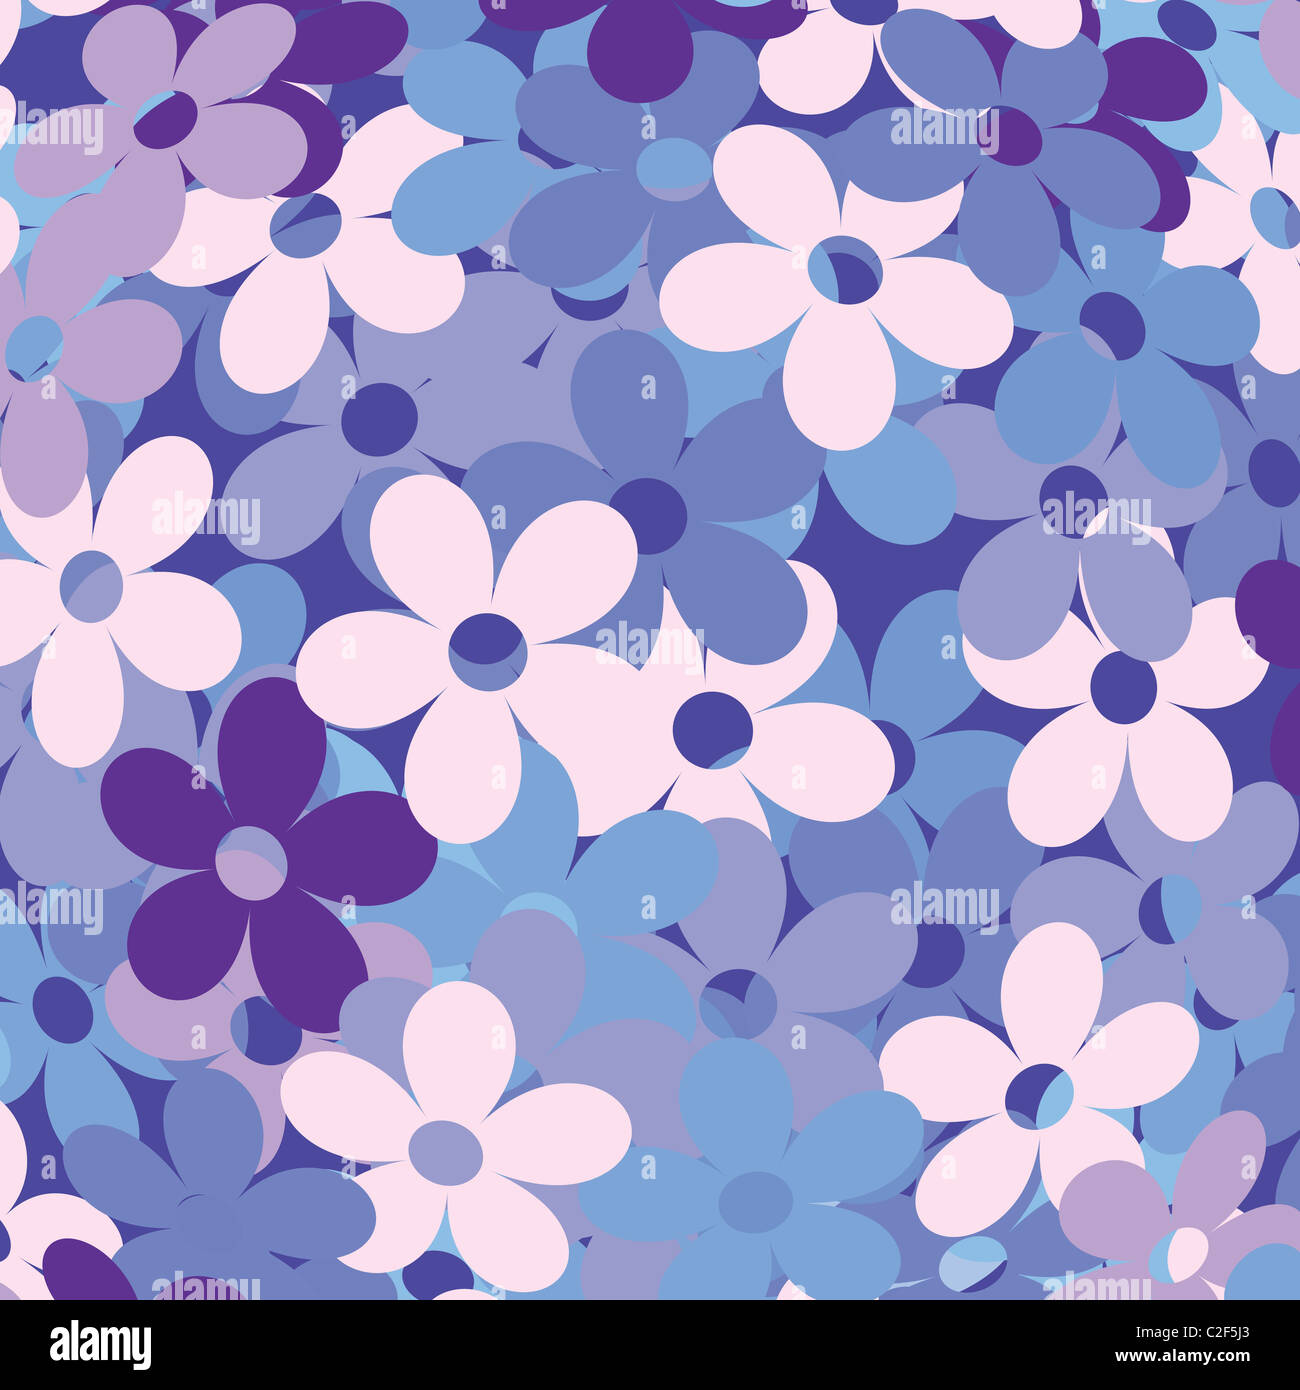 Background with flowers in blue - Stock Image